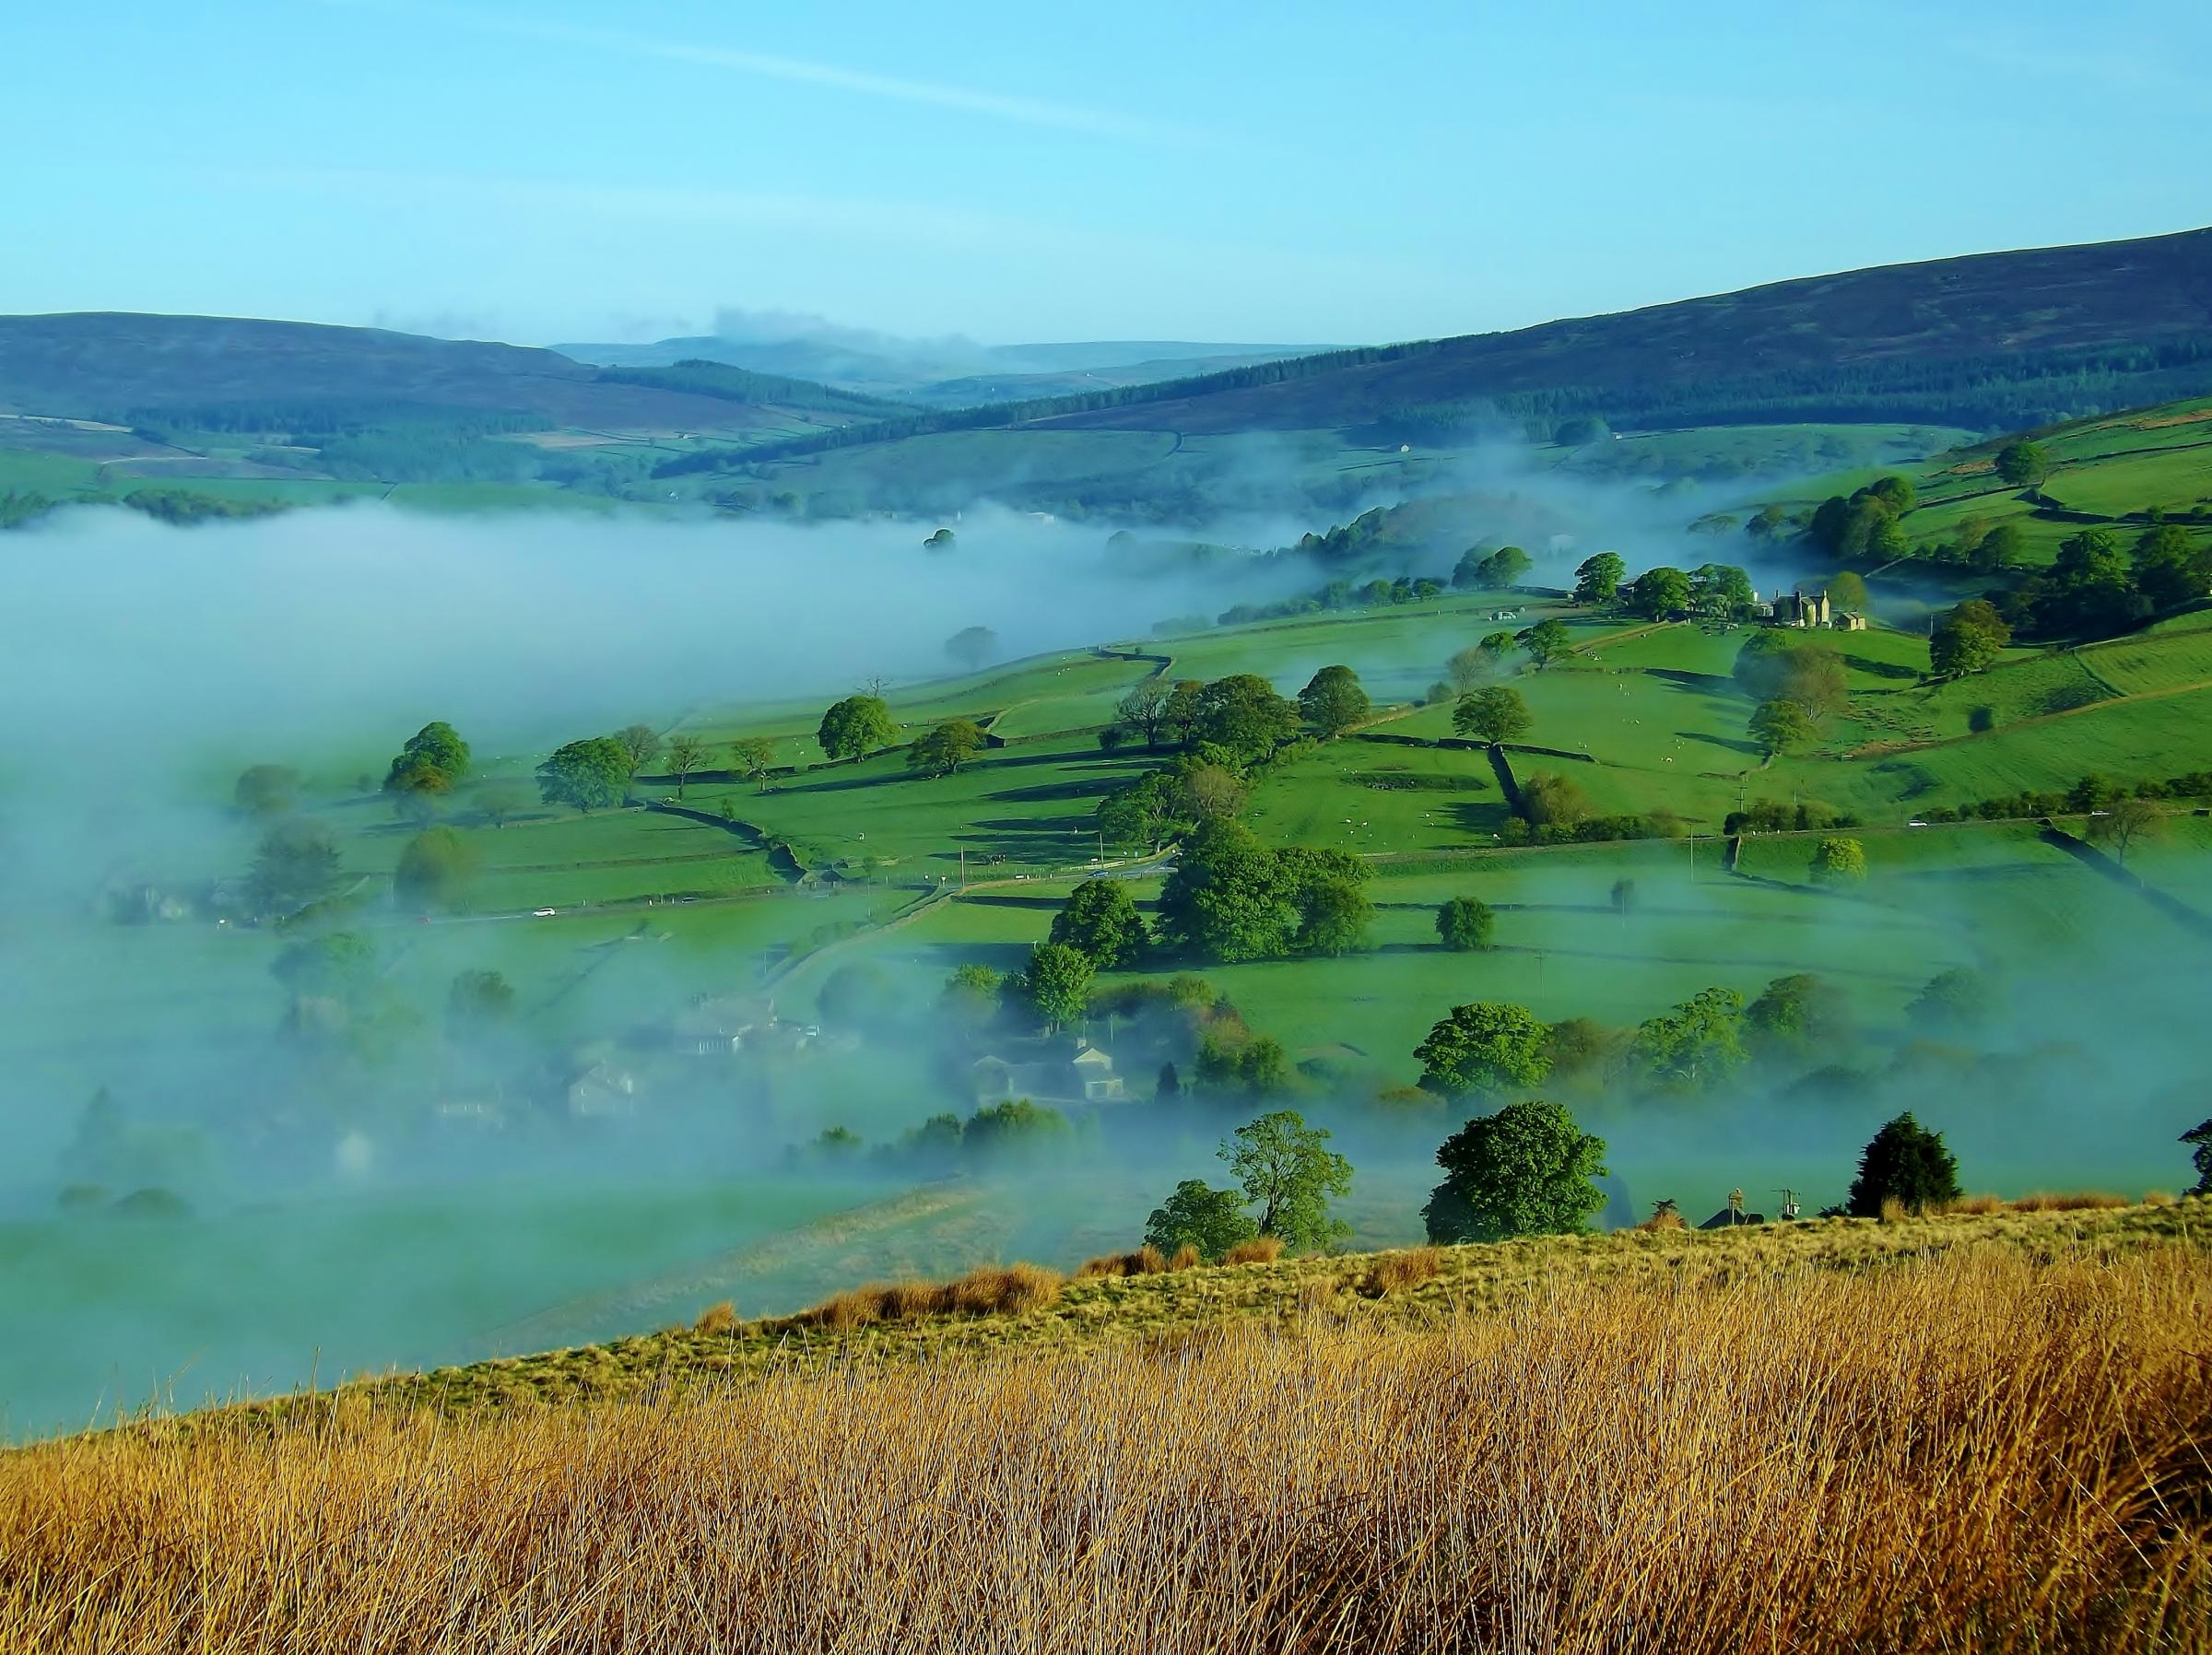 The view looking up Wharfedale from Beamsley Beacon, as the valley mist clears early on a bright spring morning. By Roger Nelson of Bolton Abbey